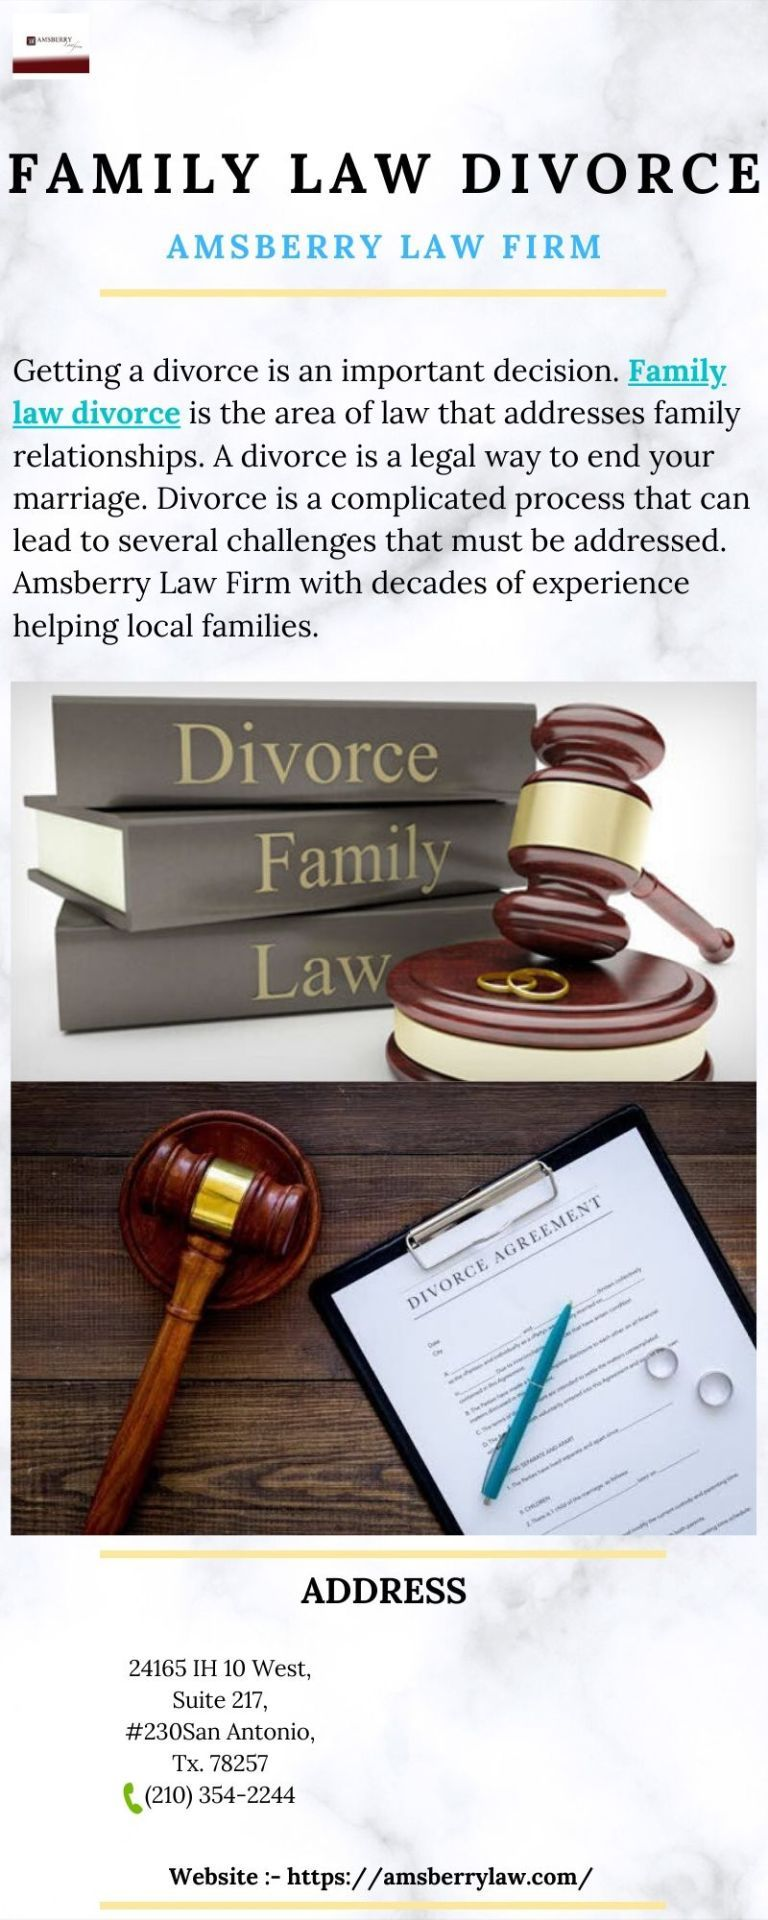 Family Law Divorce Is The Area Of Law That Addresses Family